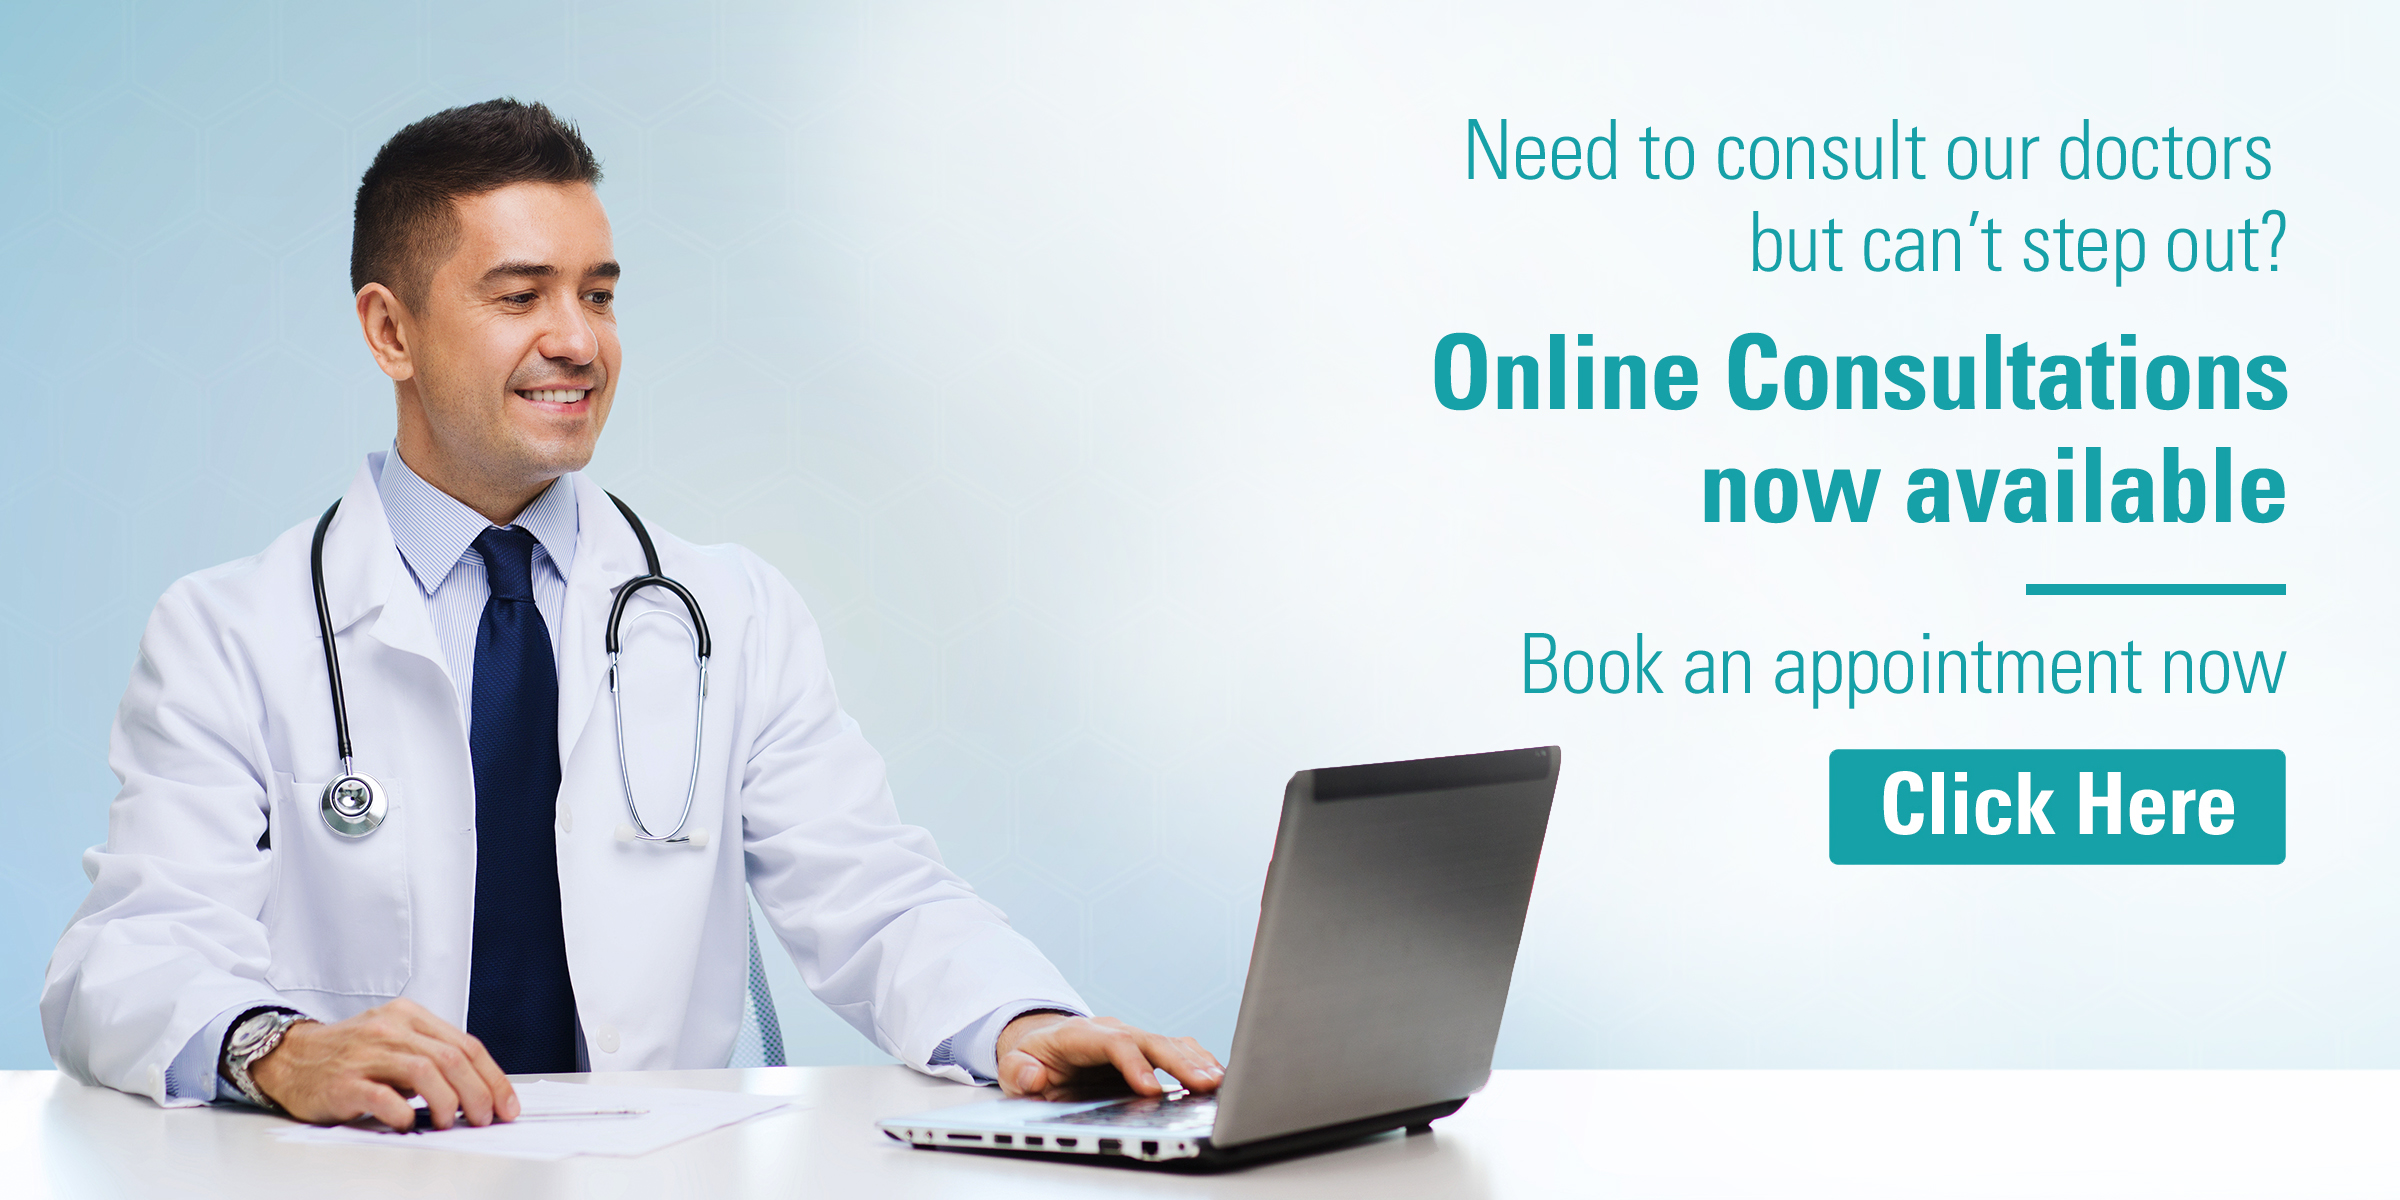 Online Consultations now available